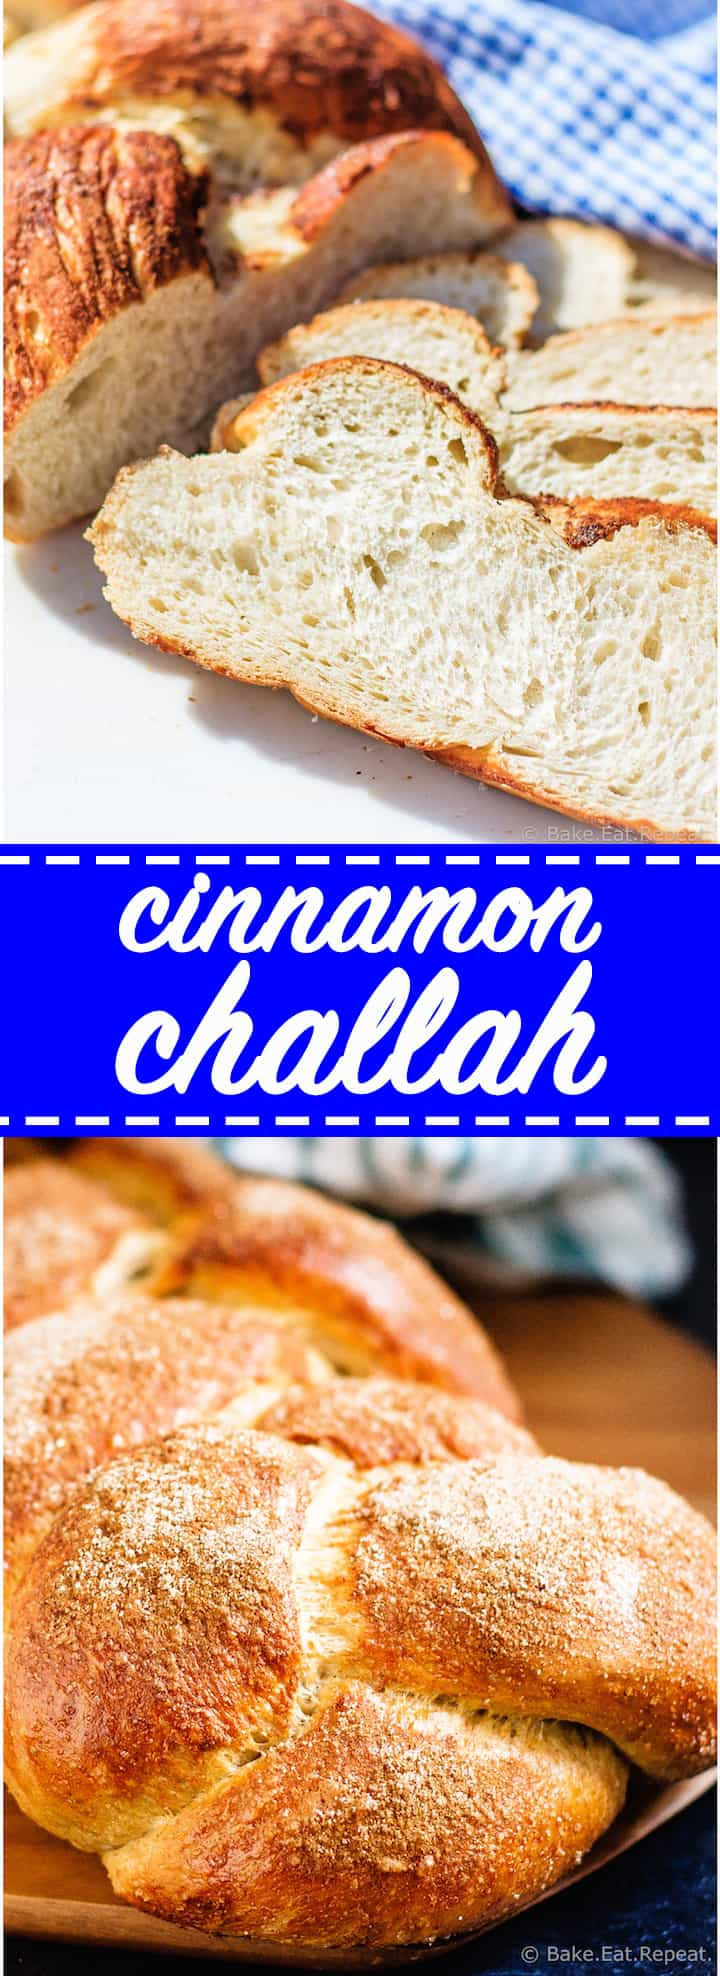 Easy to make homemade cinnamon challah bread!